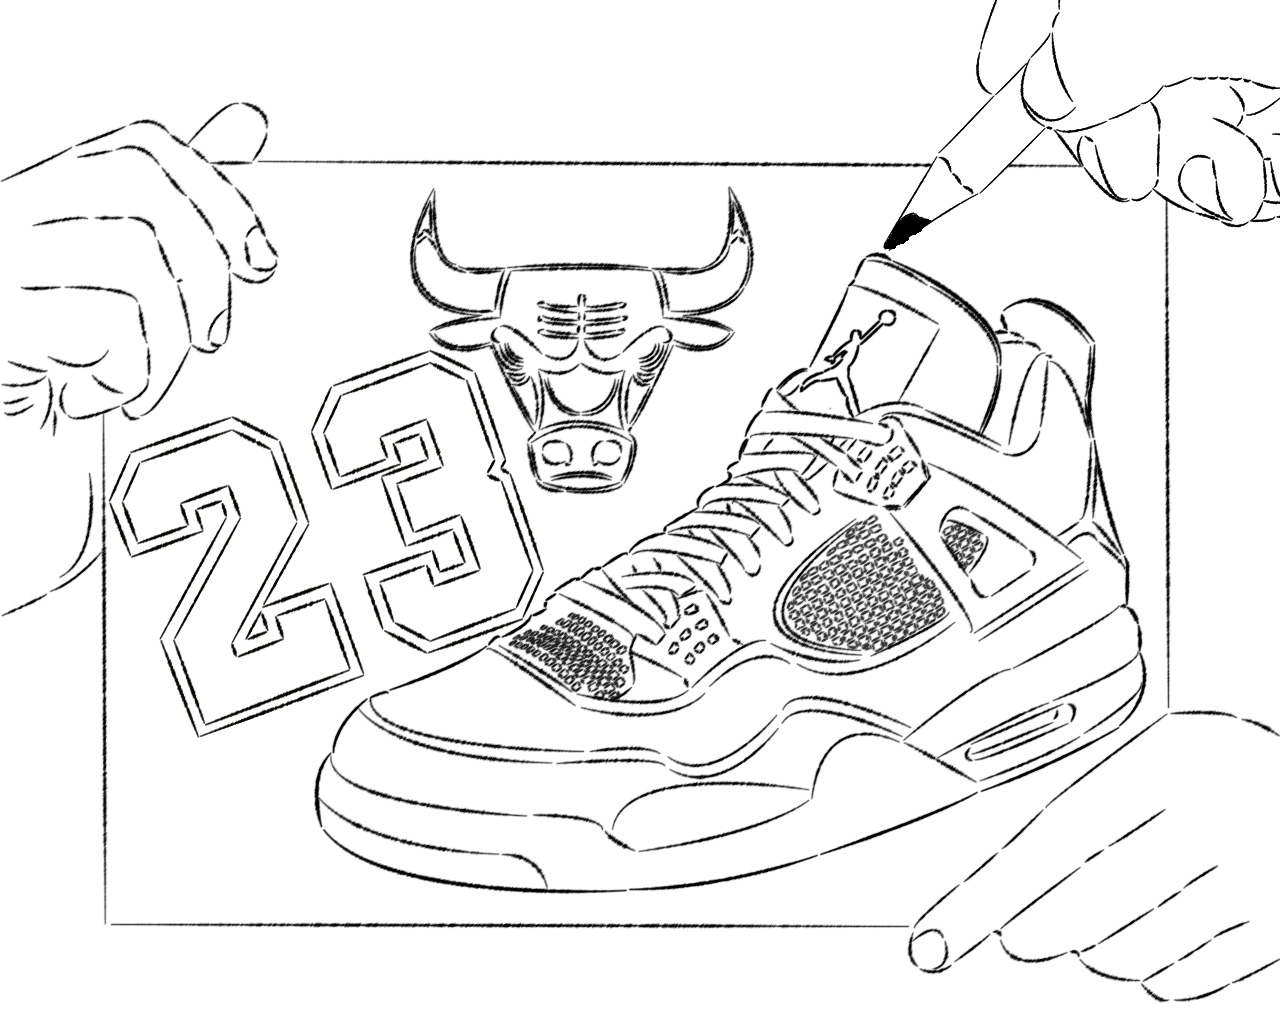 Drawn shoe jordan 3 Roundryan jordan roundryan 13 air